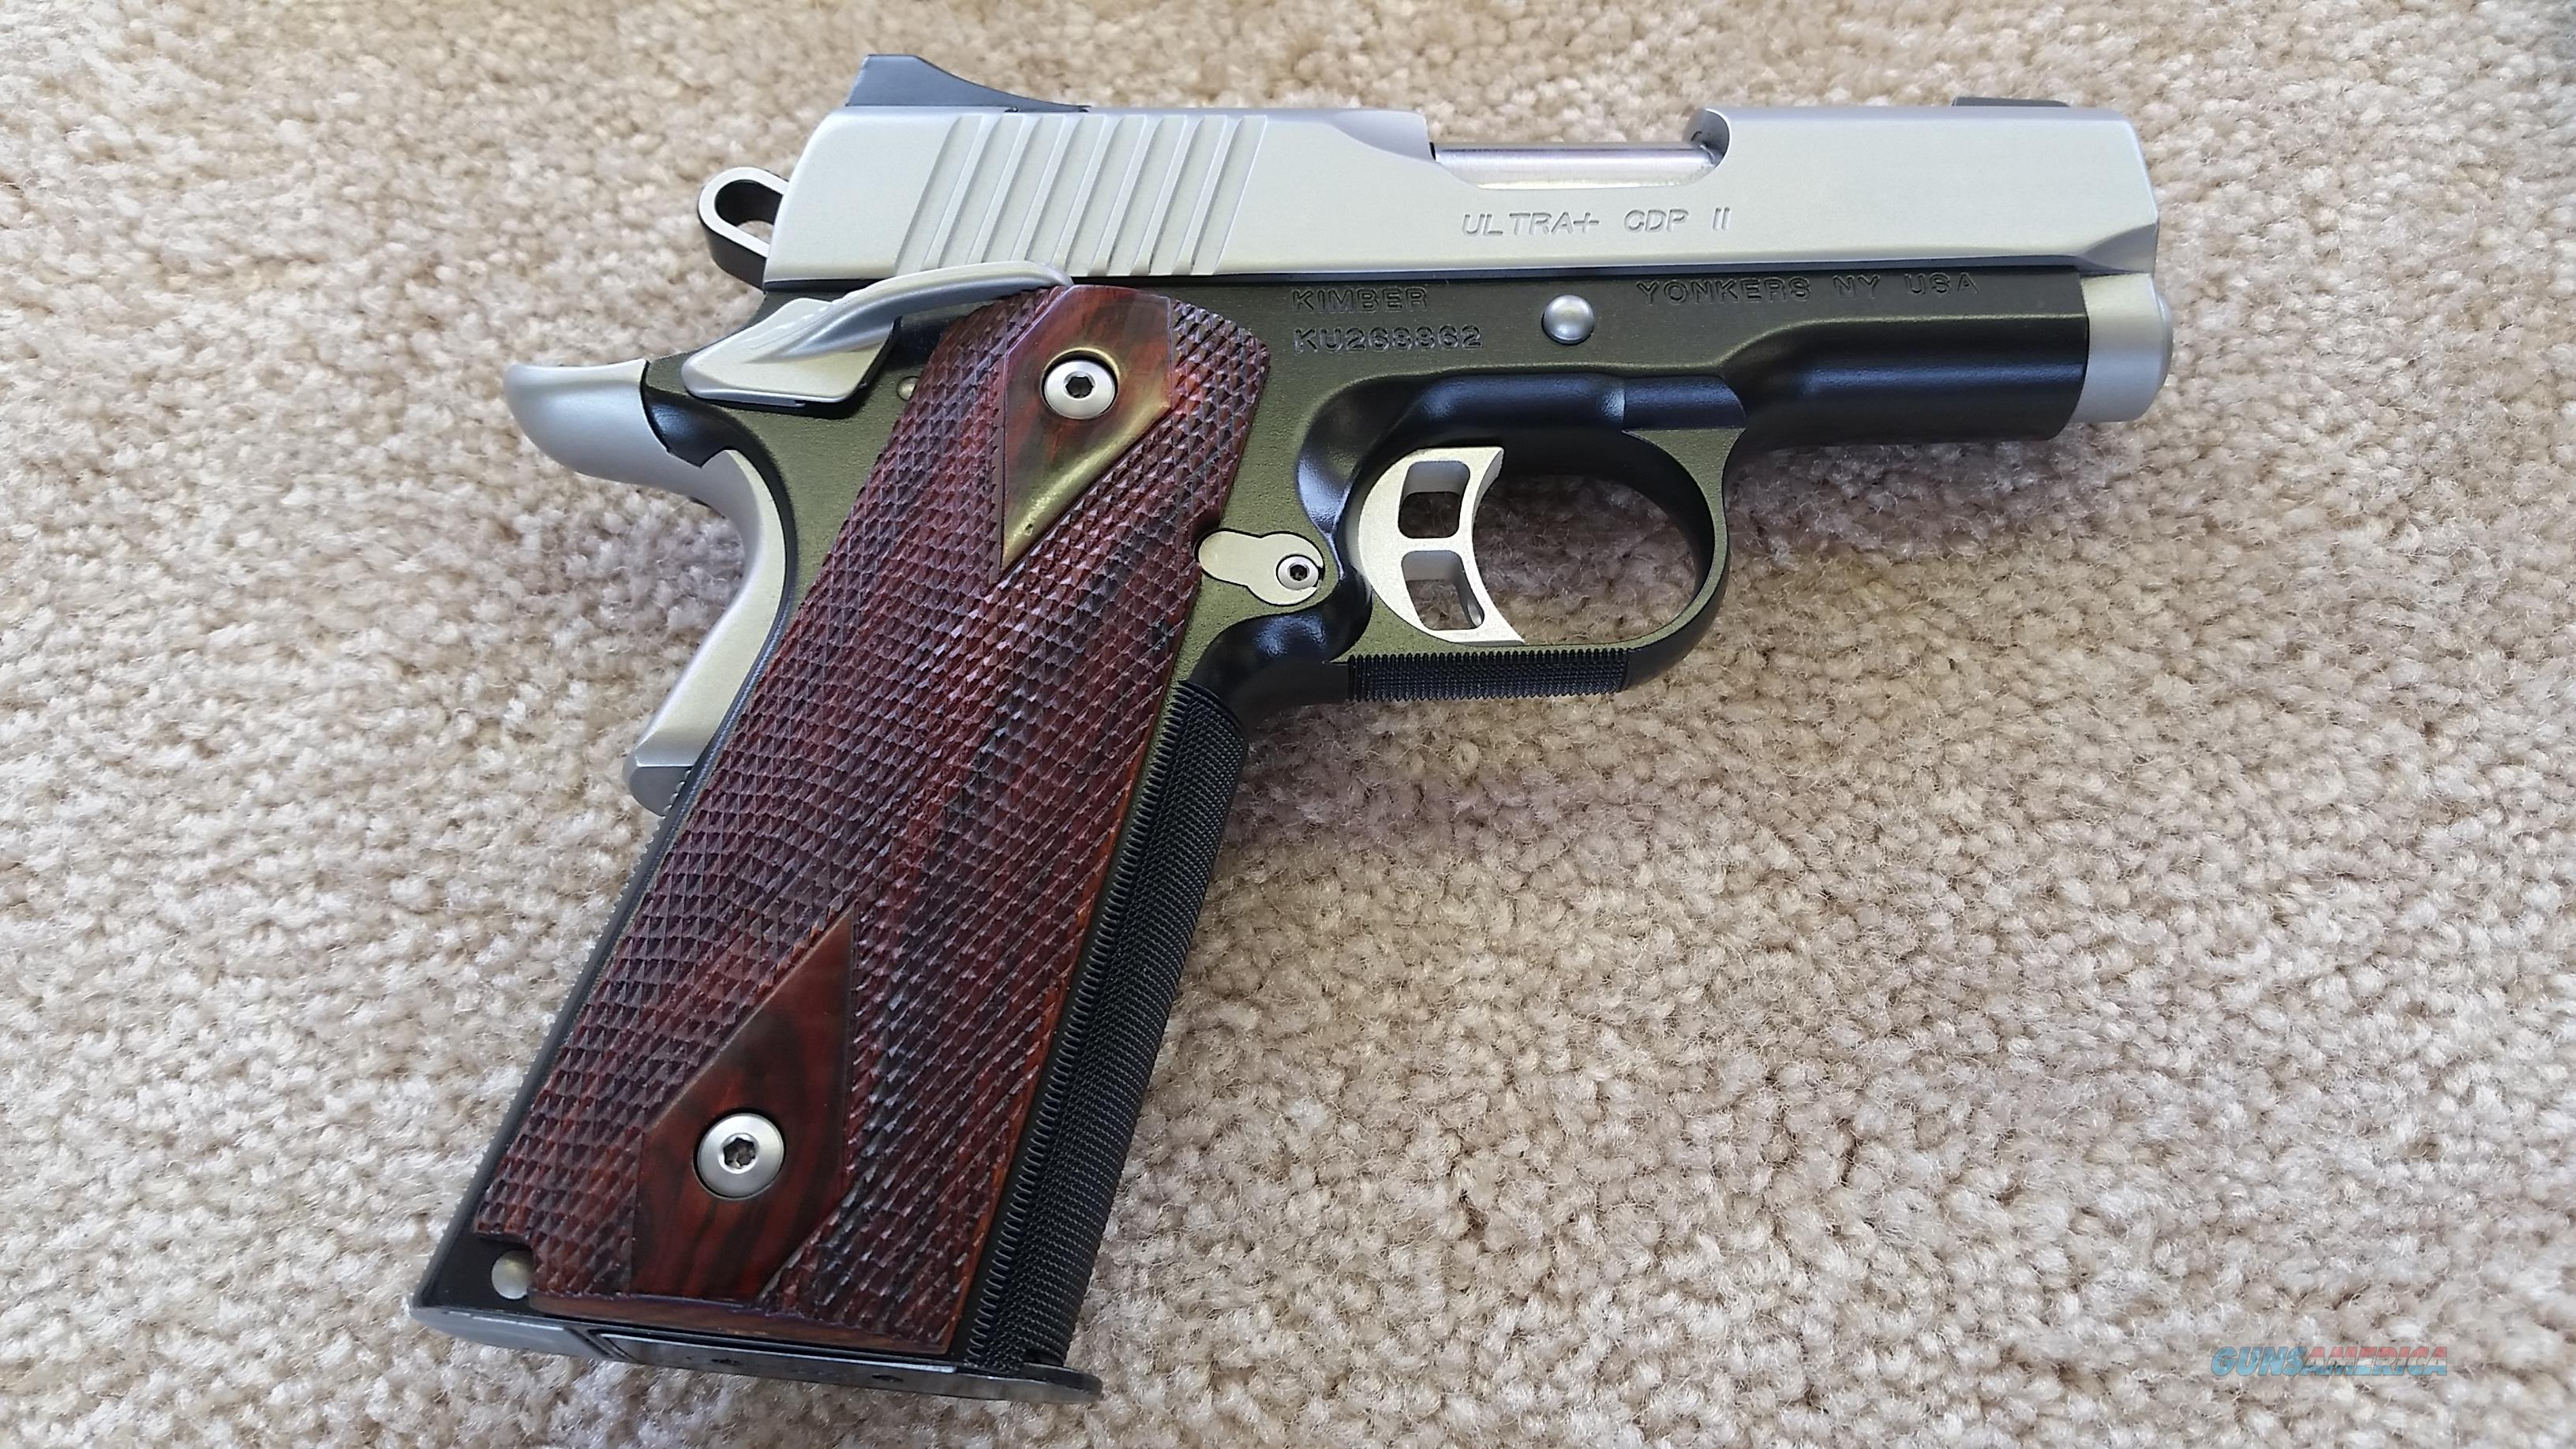 Kimber Ultra + CDP II .45 ACP w/ 7 round mag (Rosewood Grips)  Guns > Pistols > Kimber of America Pistols > 1911